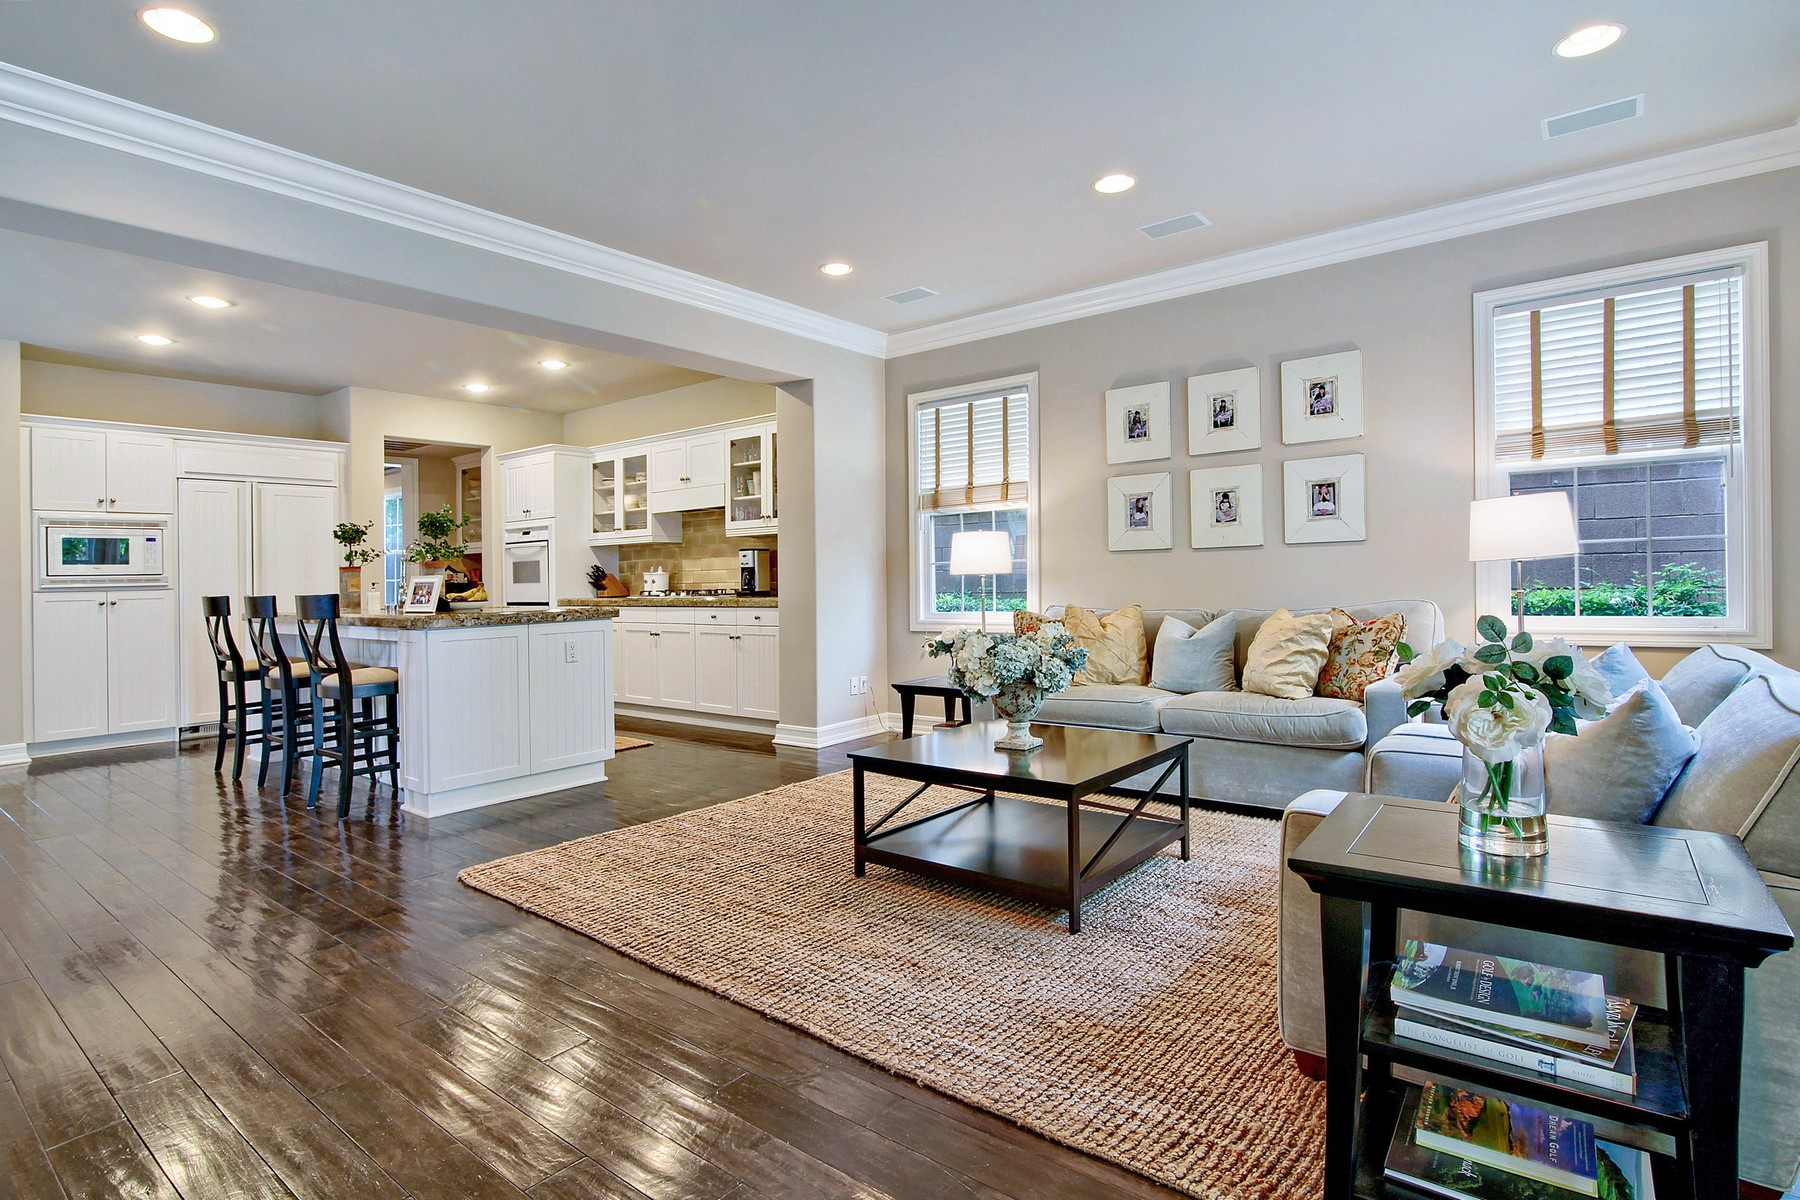 Single Family Home for Sale at 9 Caldwell Lane Ladera Ranch, California, 92694 United States